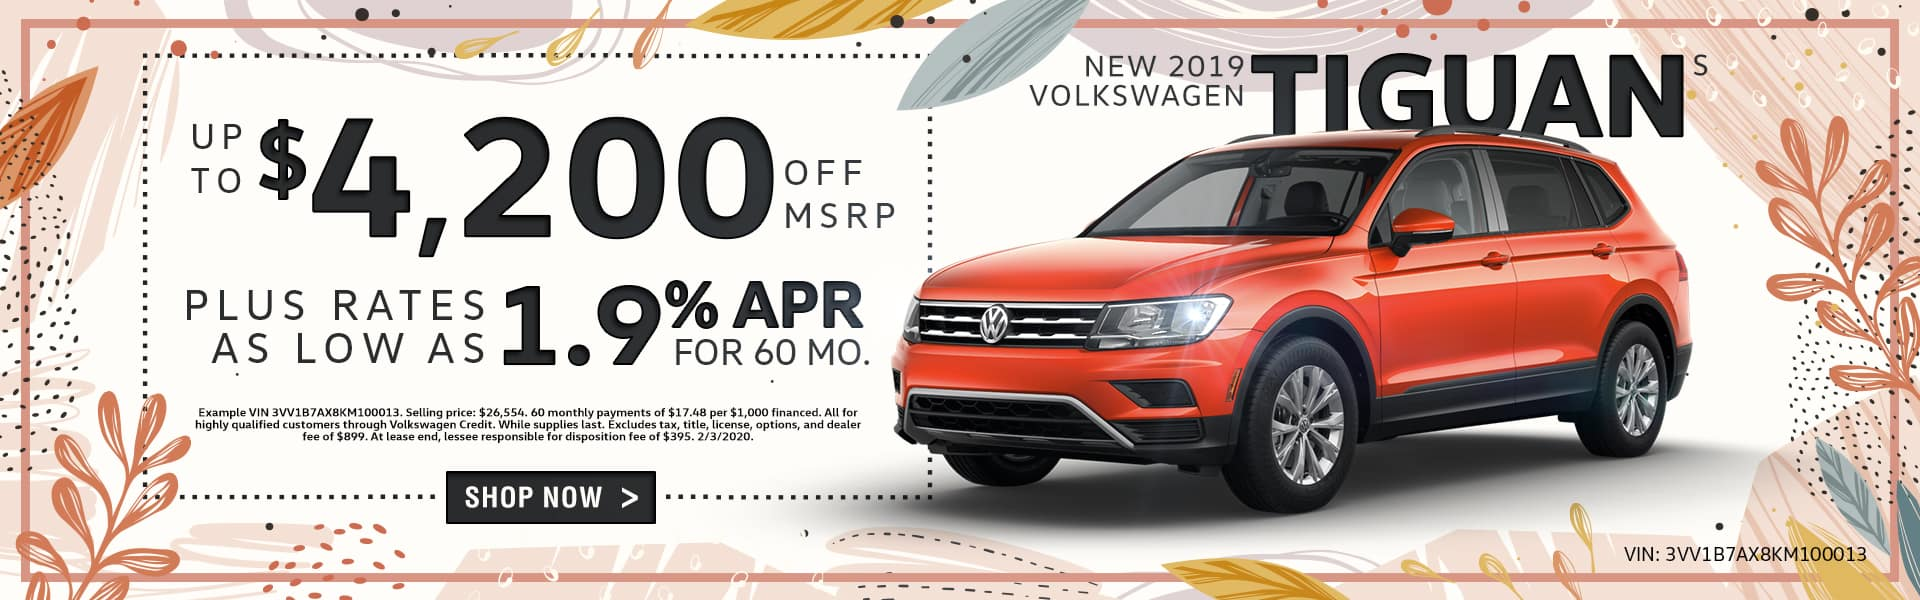 New 2019 Volkswagen Tiguan S | Up To $4,200 Off MSRP Plus Rates As Low As 1.9% For 60 Months